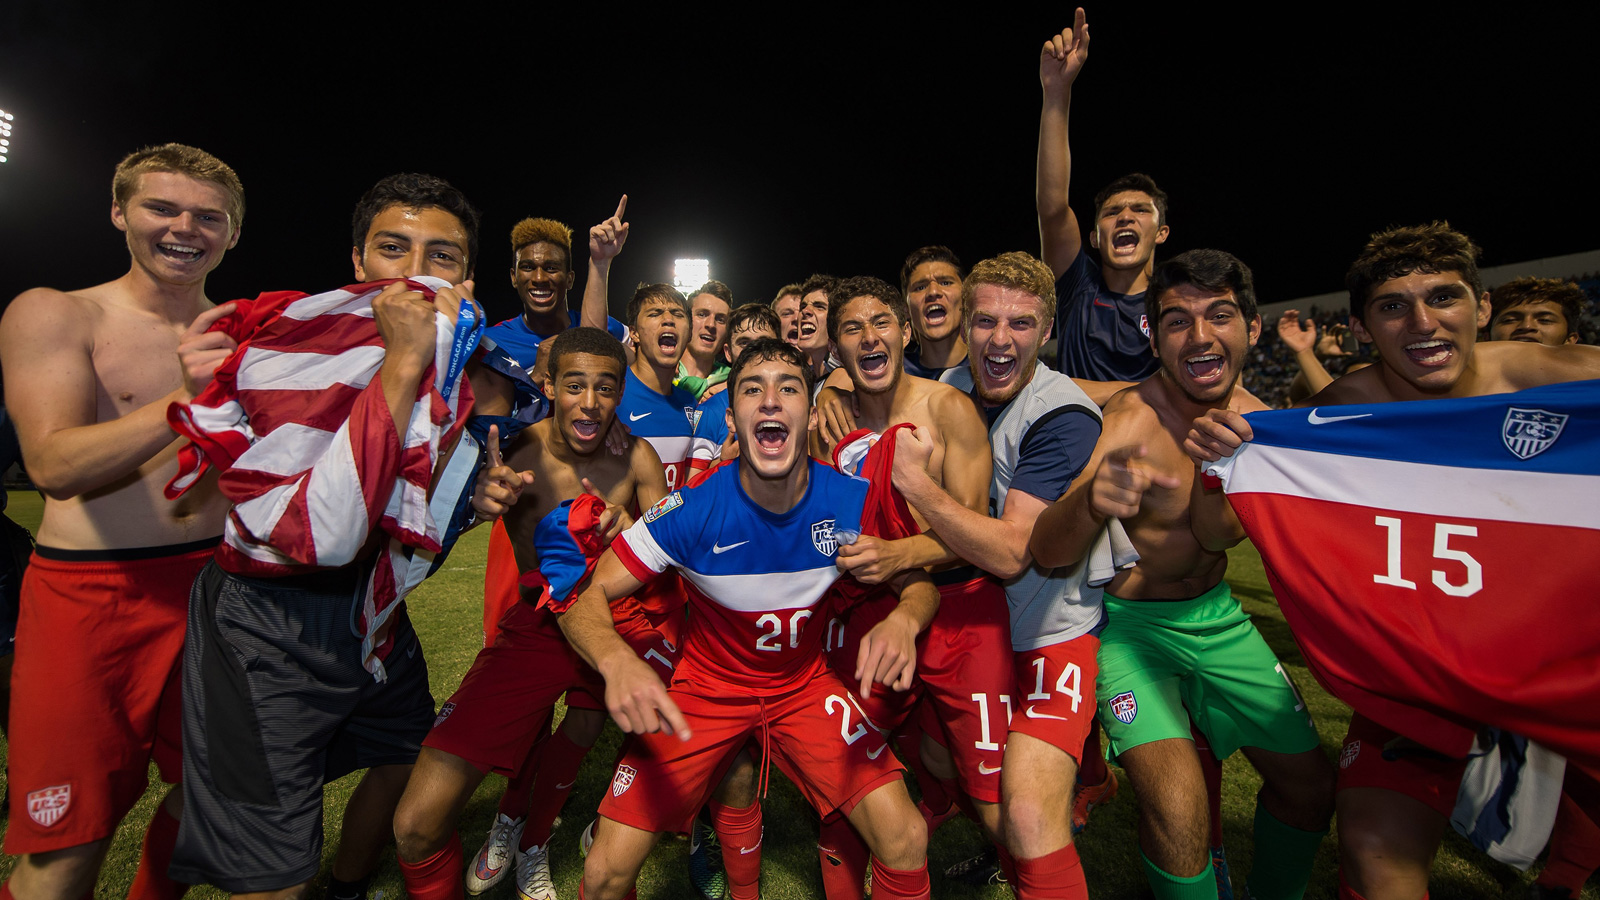 The U.S. U-17 national team celebrates qualifying for the FIFA U-17 World Cup after defeating Jamaica on penalty kicks following a 0-0 draw.